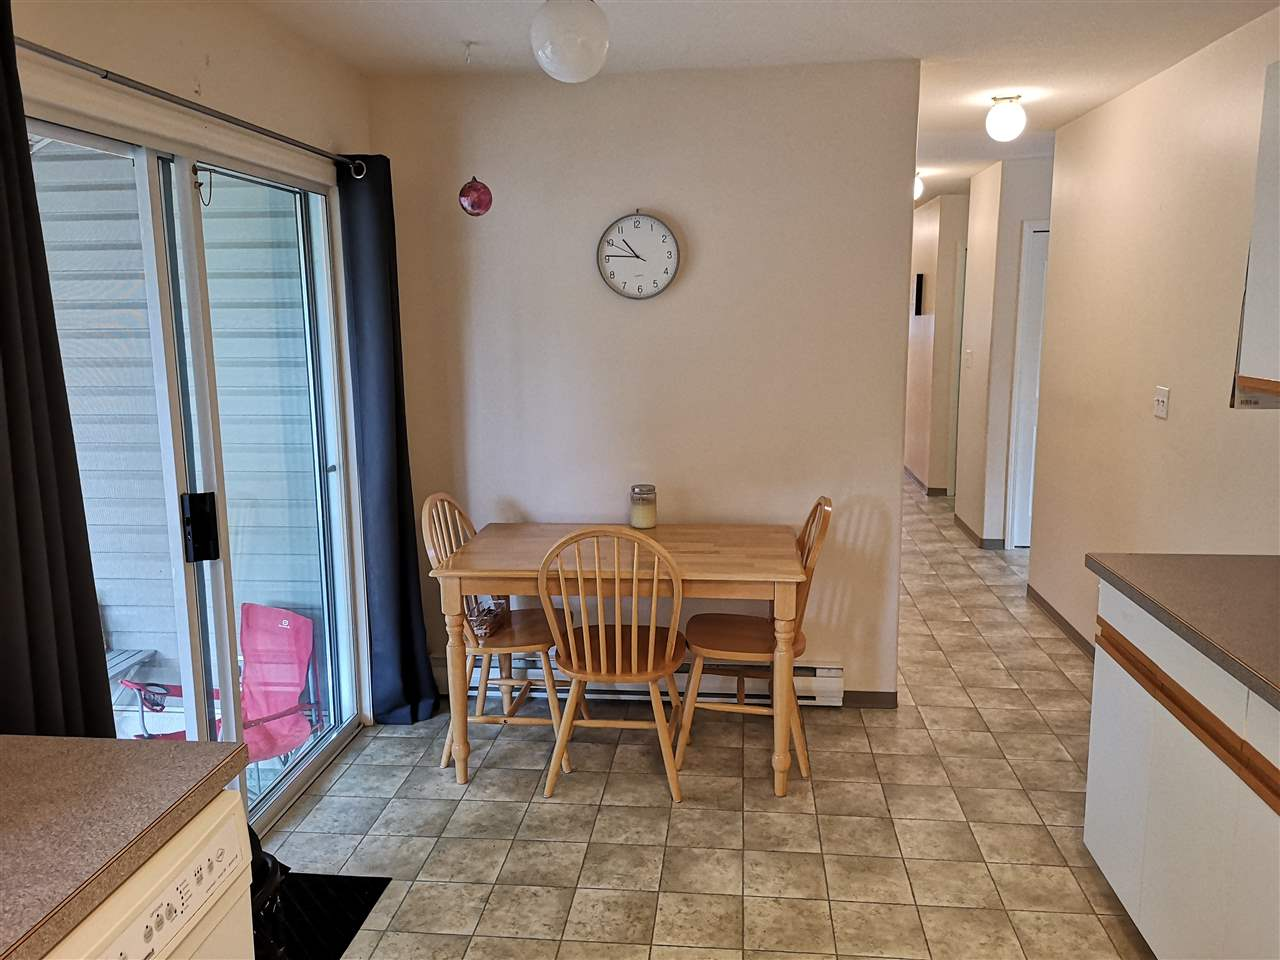 1448 BONNIEBROOK HEIGHTS ROAD - Gibsons & Area House/Single Family for sale, 3 Bedrooms (R2482137) - #7